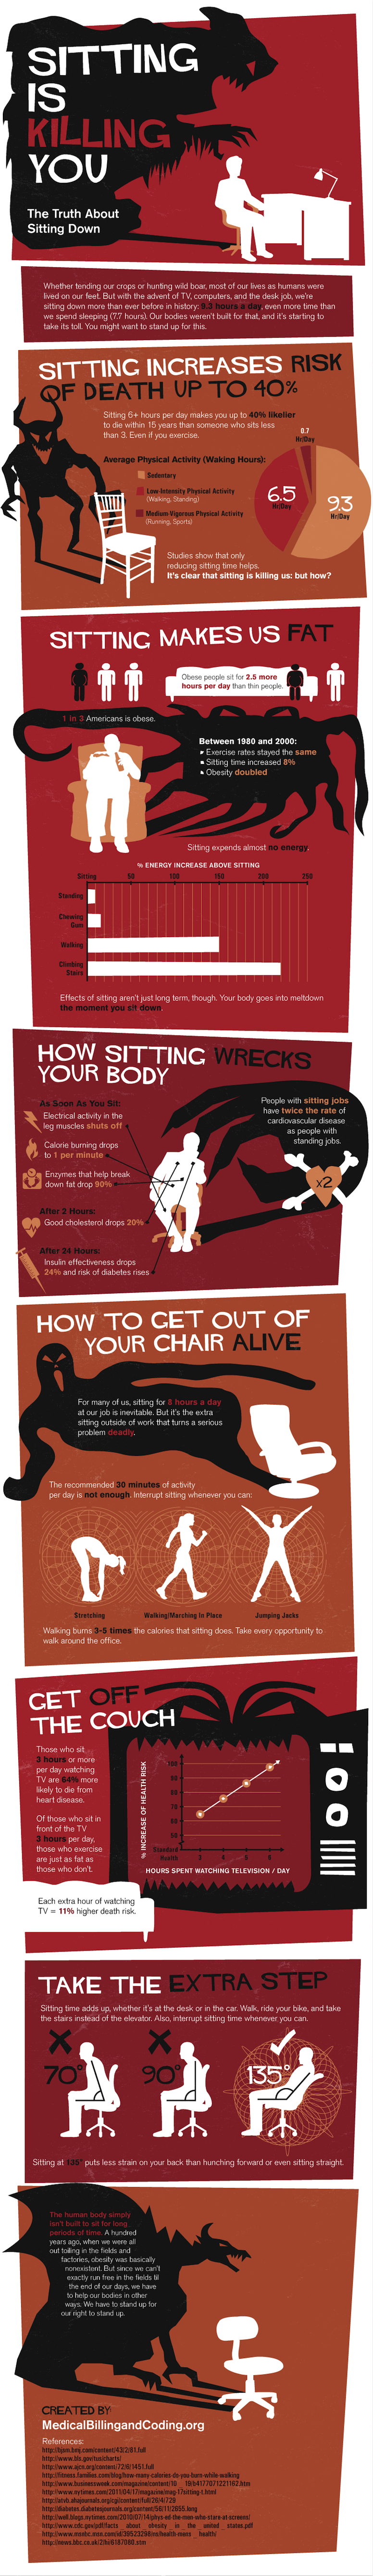 Health-Risks-of-Sitting